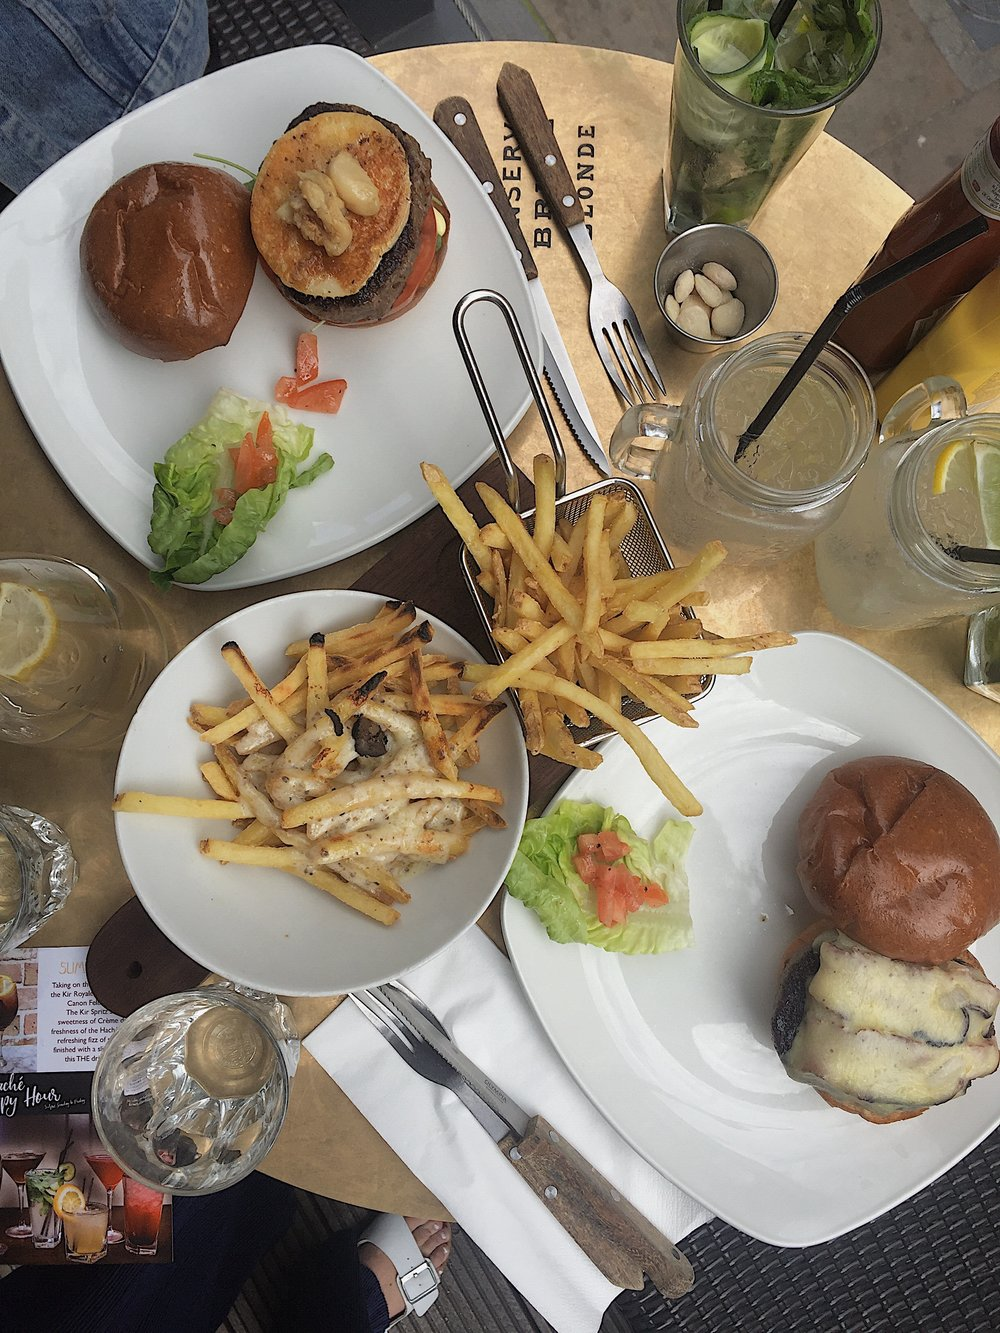 Main course: Burgers and truffle fries.